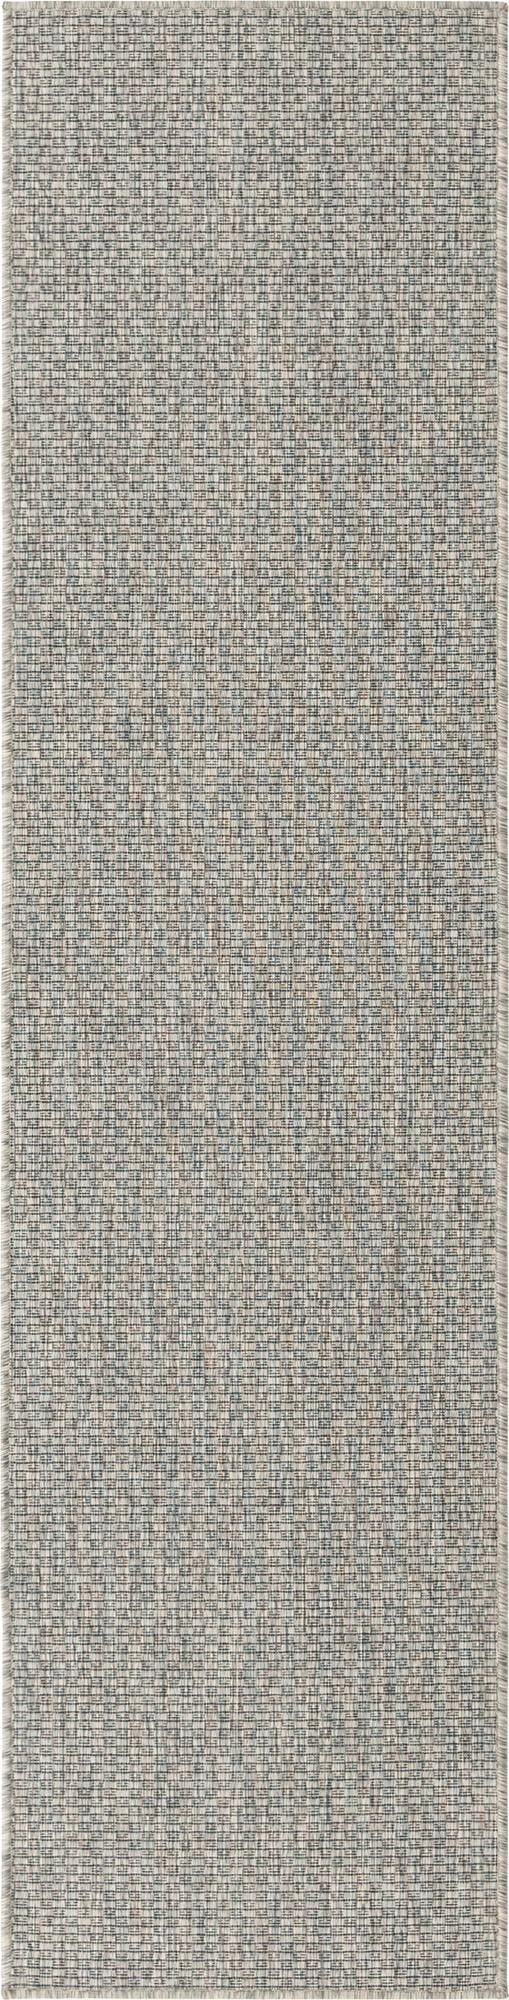 2' x 8' Outdoor Solid Runner Rug main image